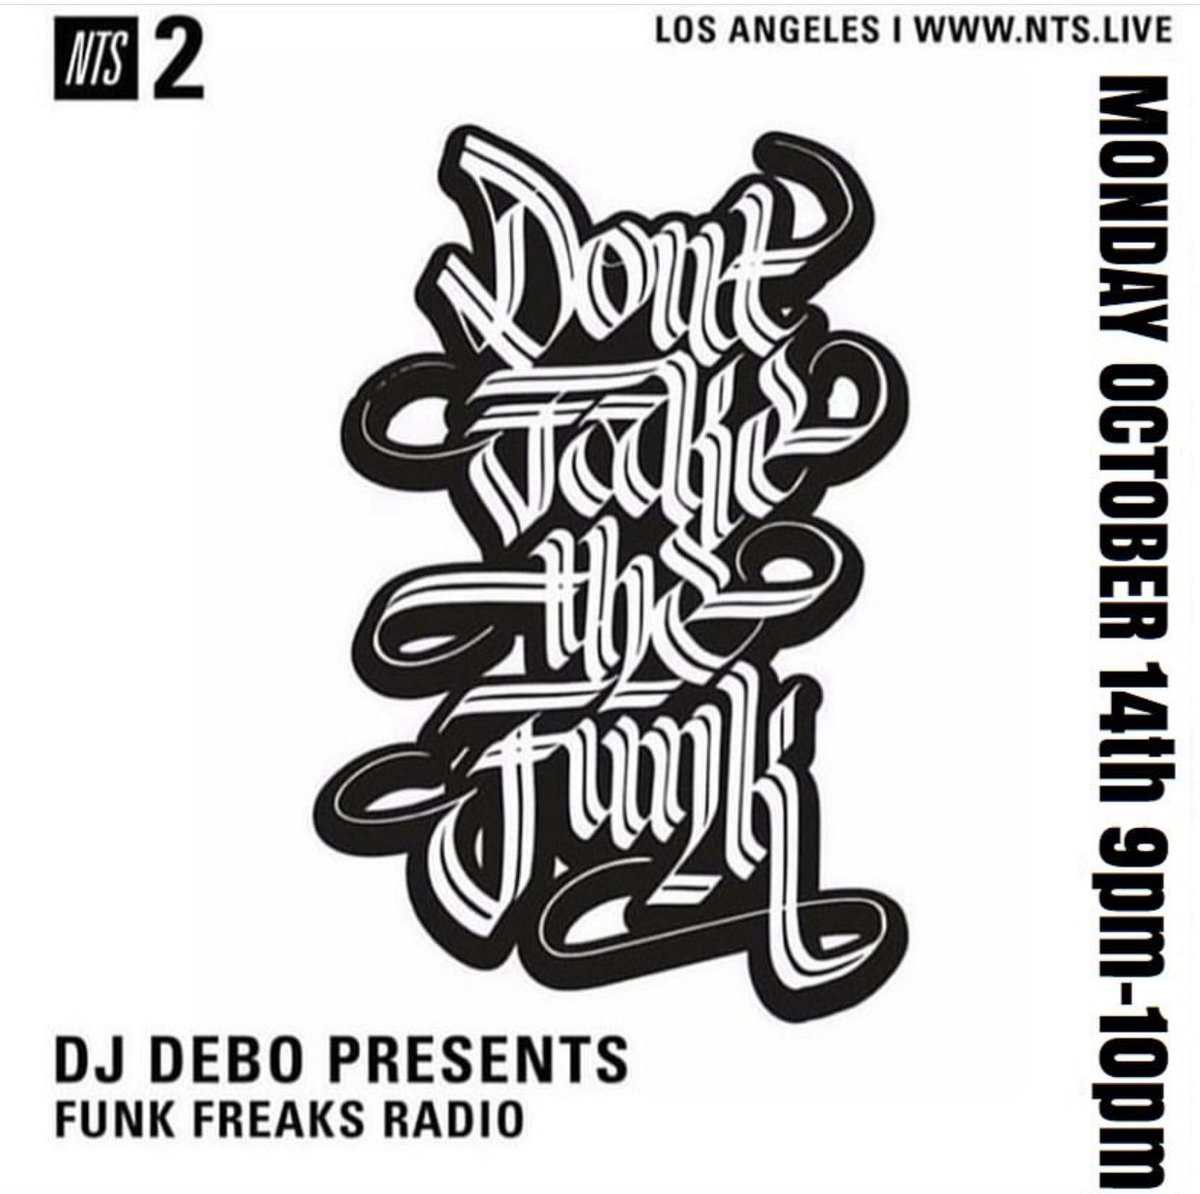 It's @FunkFreaks Radio w/ DJ Debo live from LA for the next hour. Lock in: nts.live/2